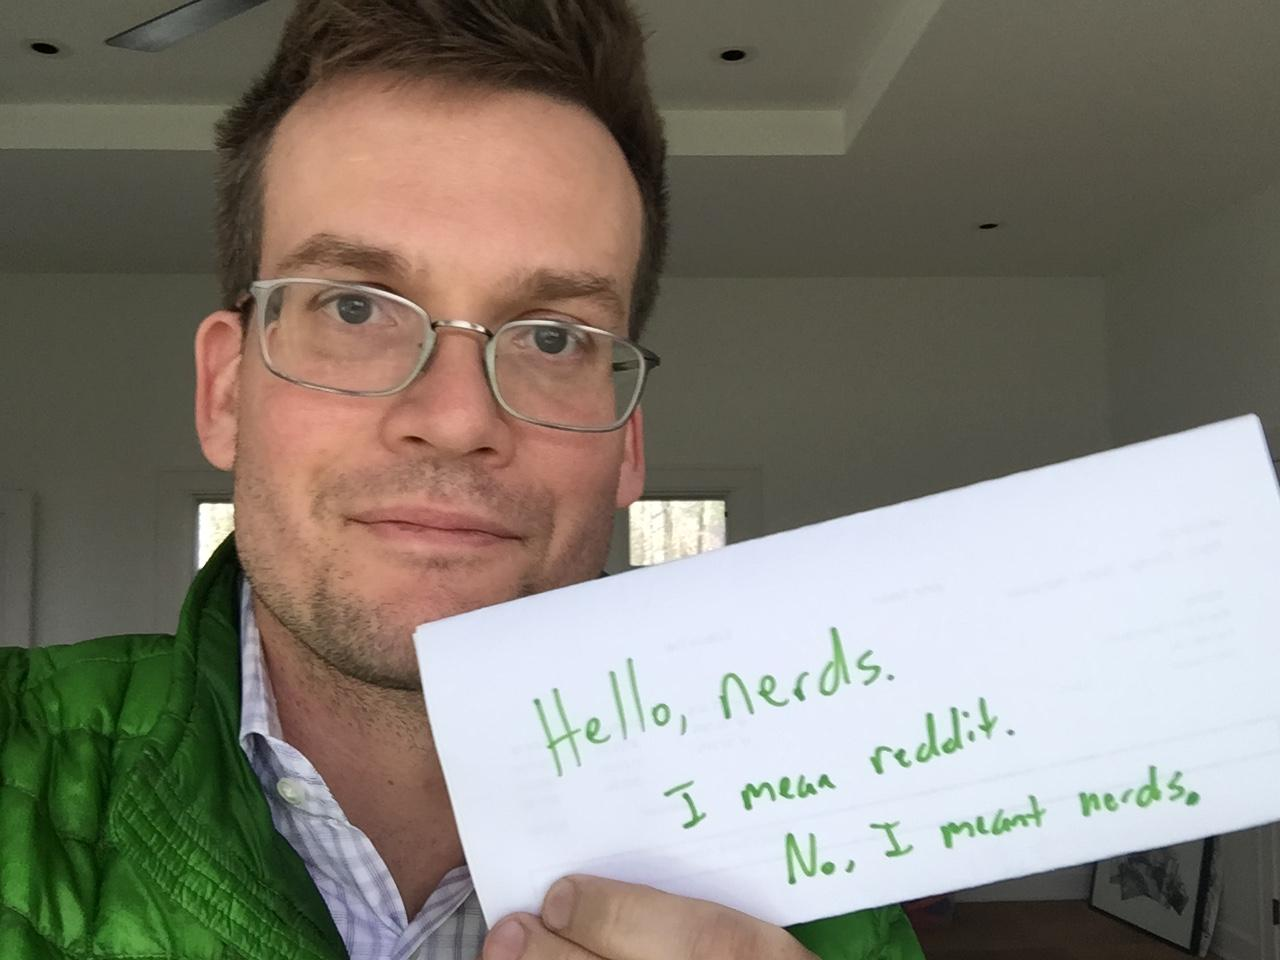 Just some highlights from John Green's bomb Reddit AMA